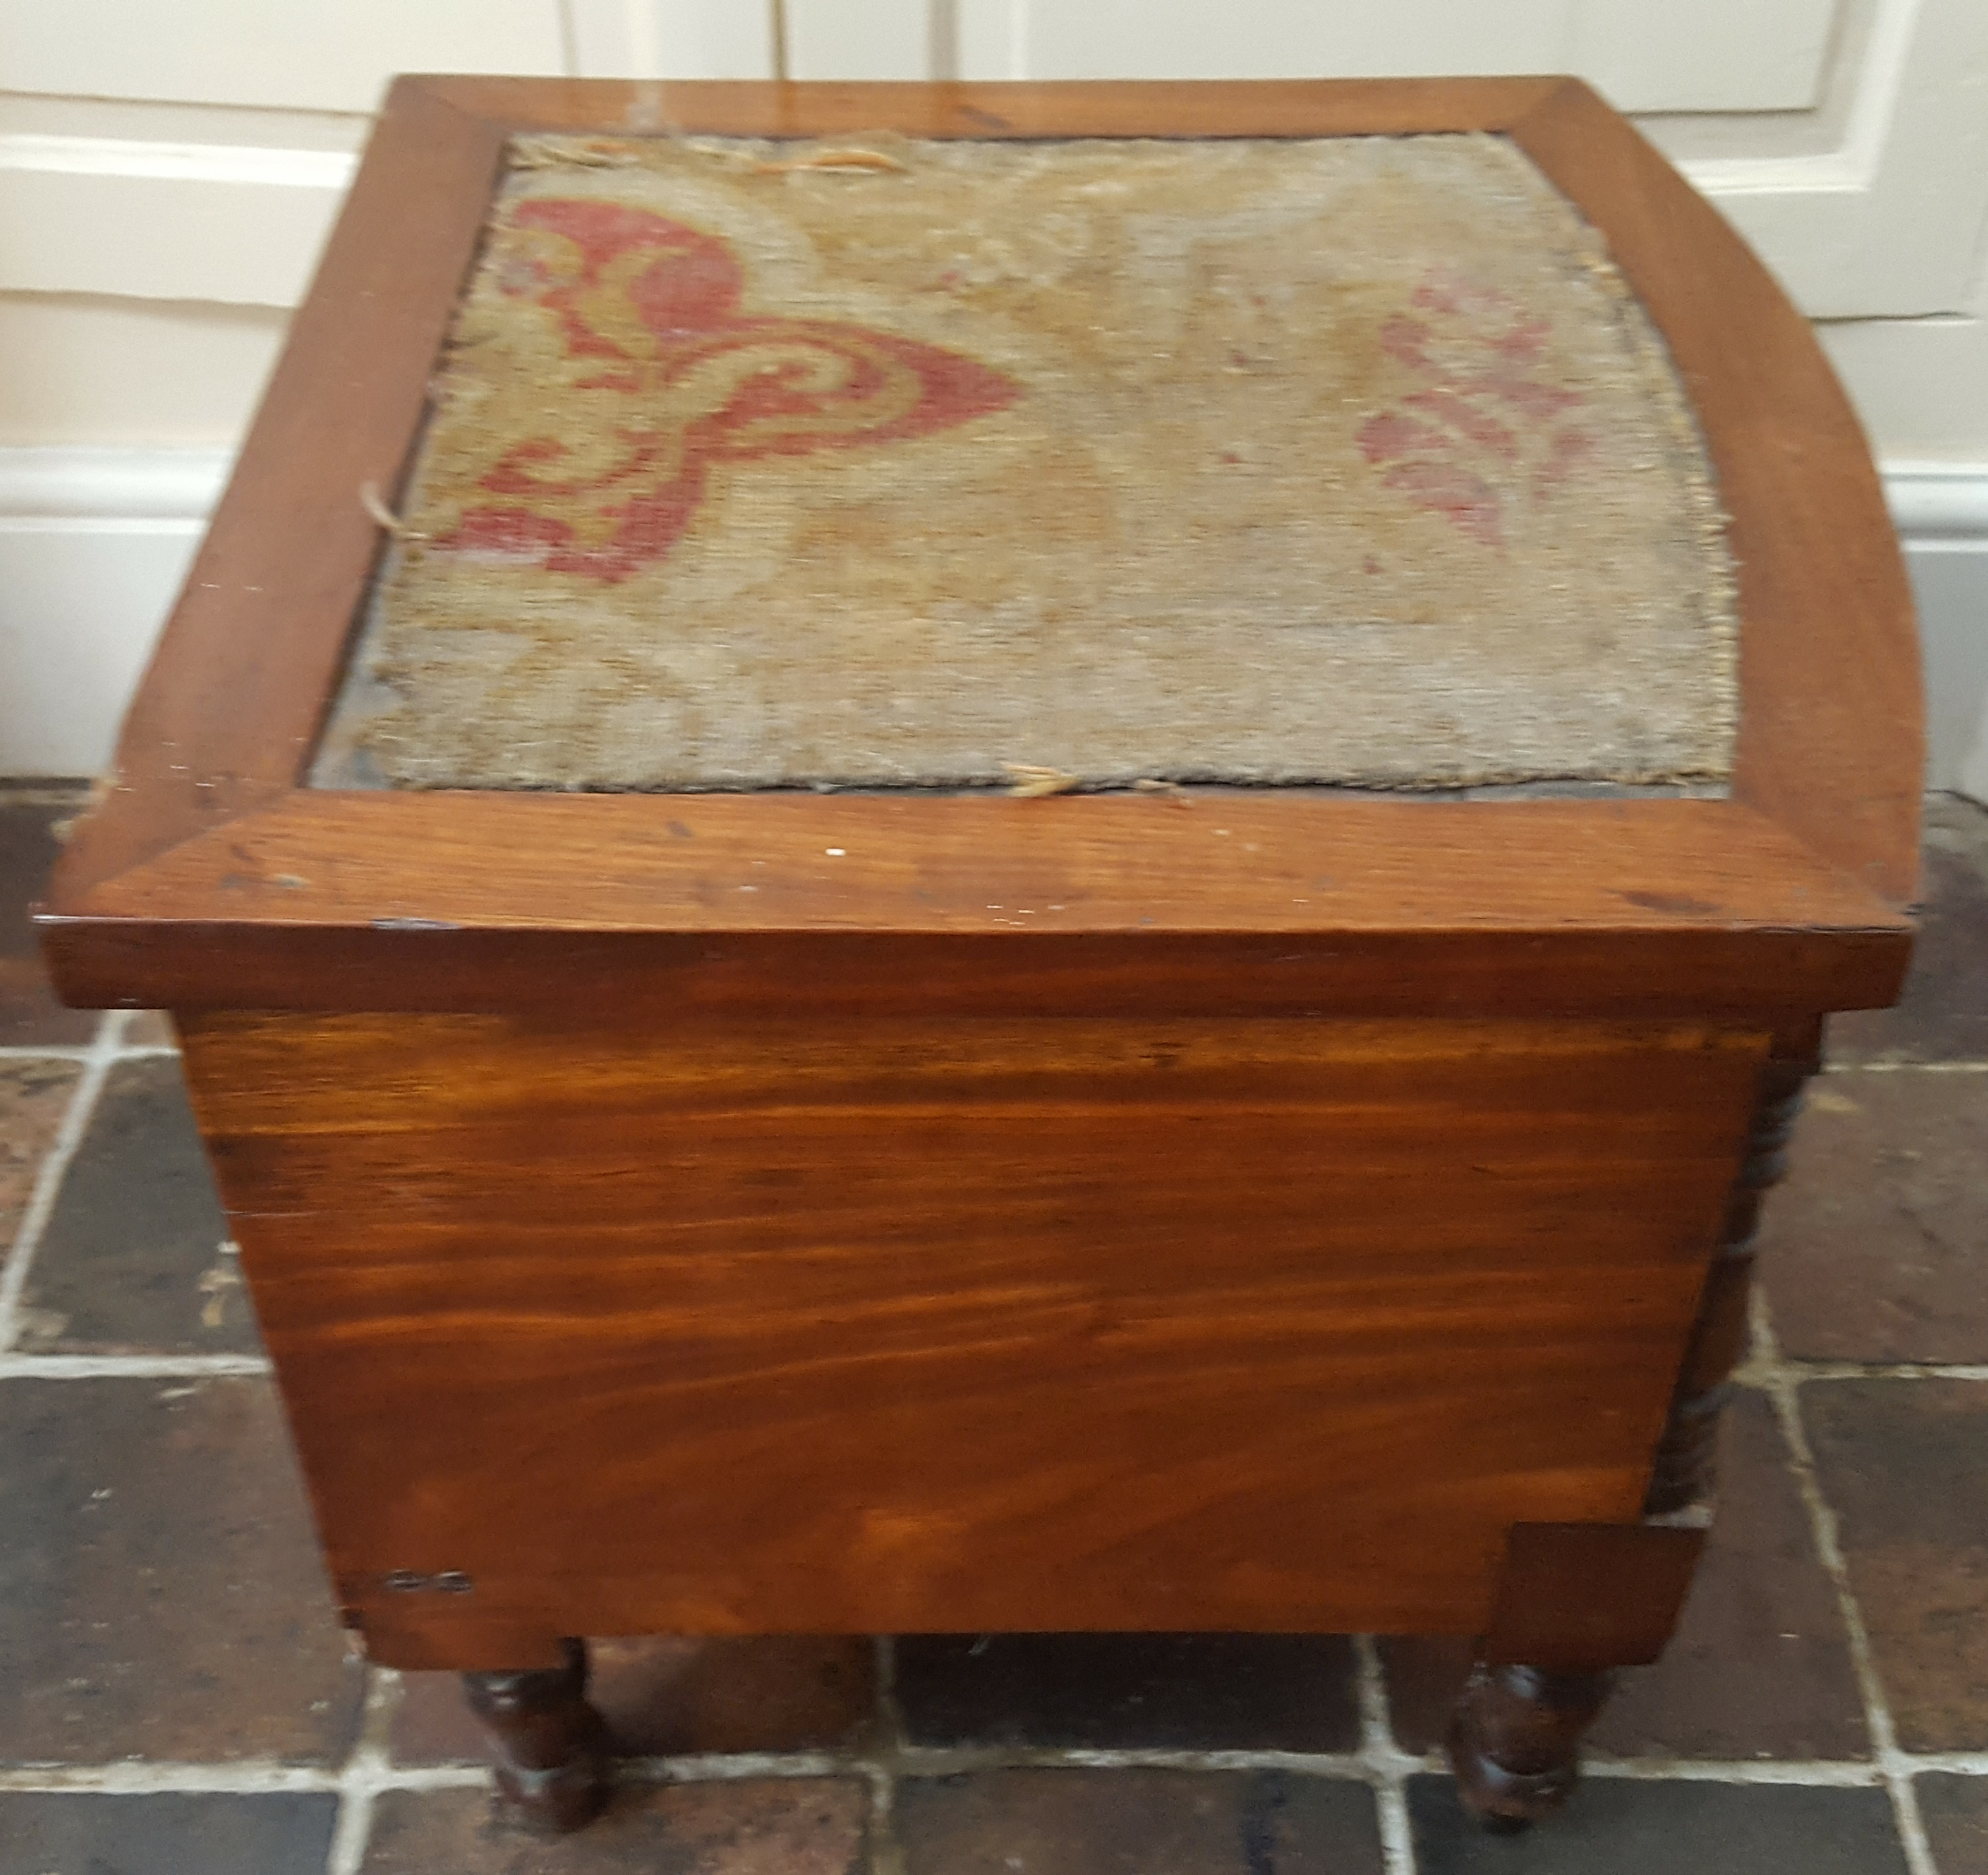 Lot 70 - Antique Victorian or Earlier Commode with original pot NO RESERVE